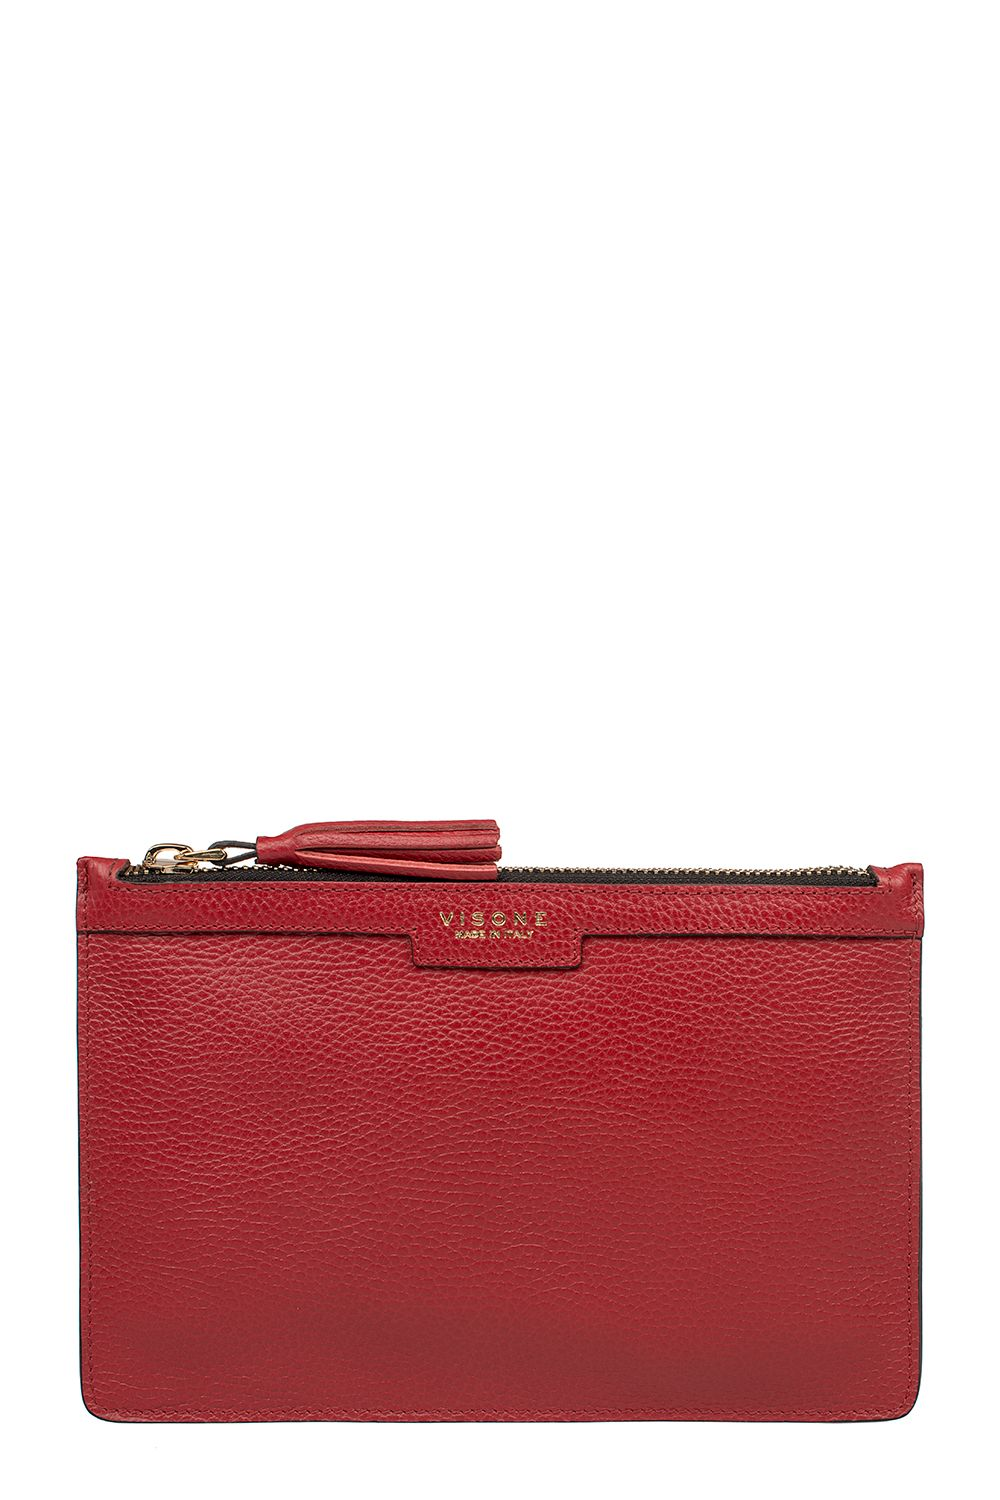 Red Hammared Leather Kim Cluch